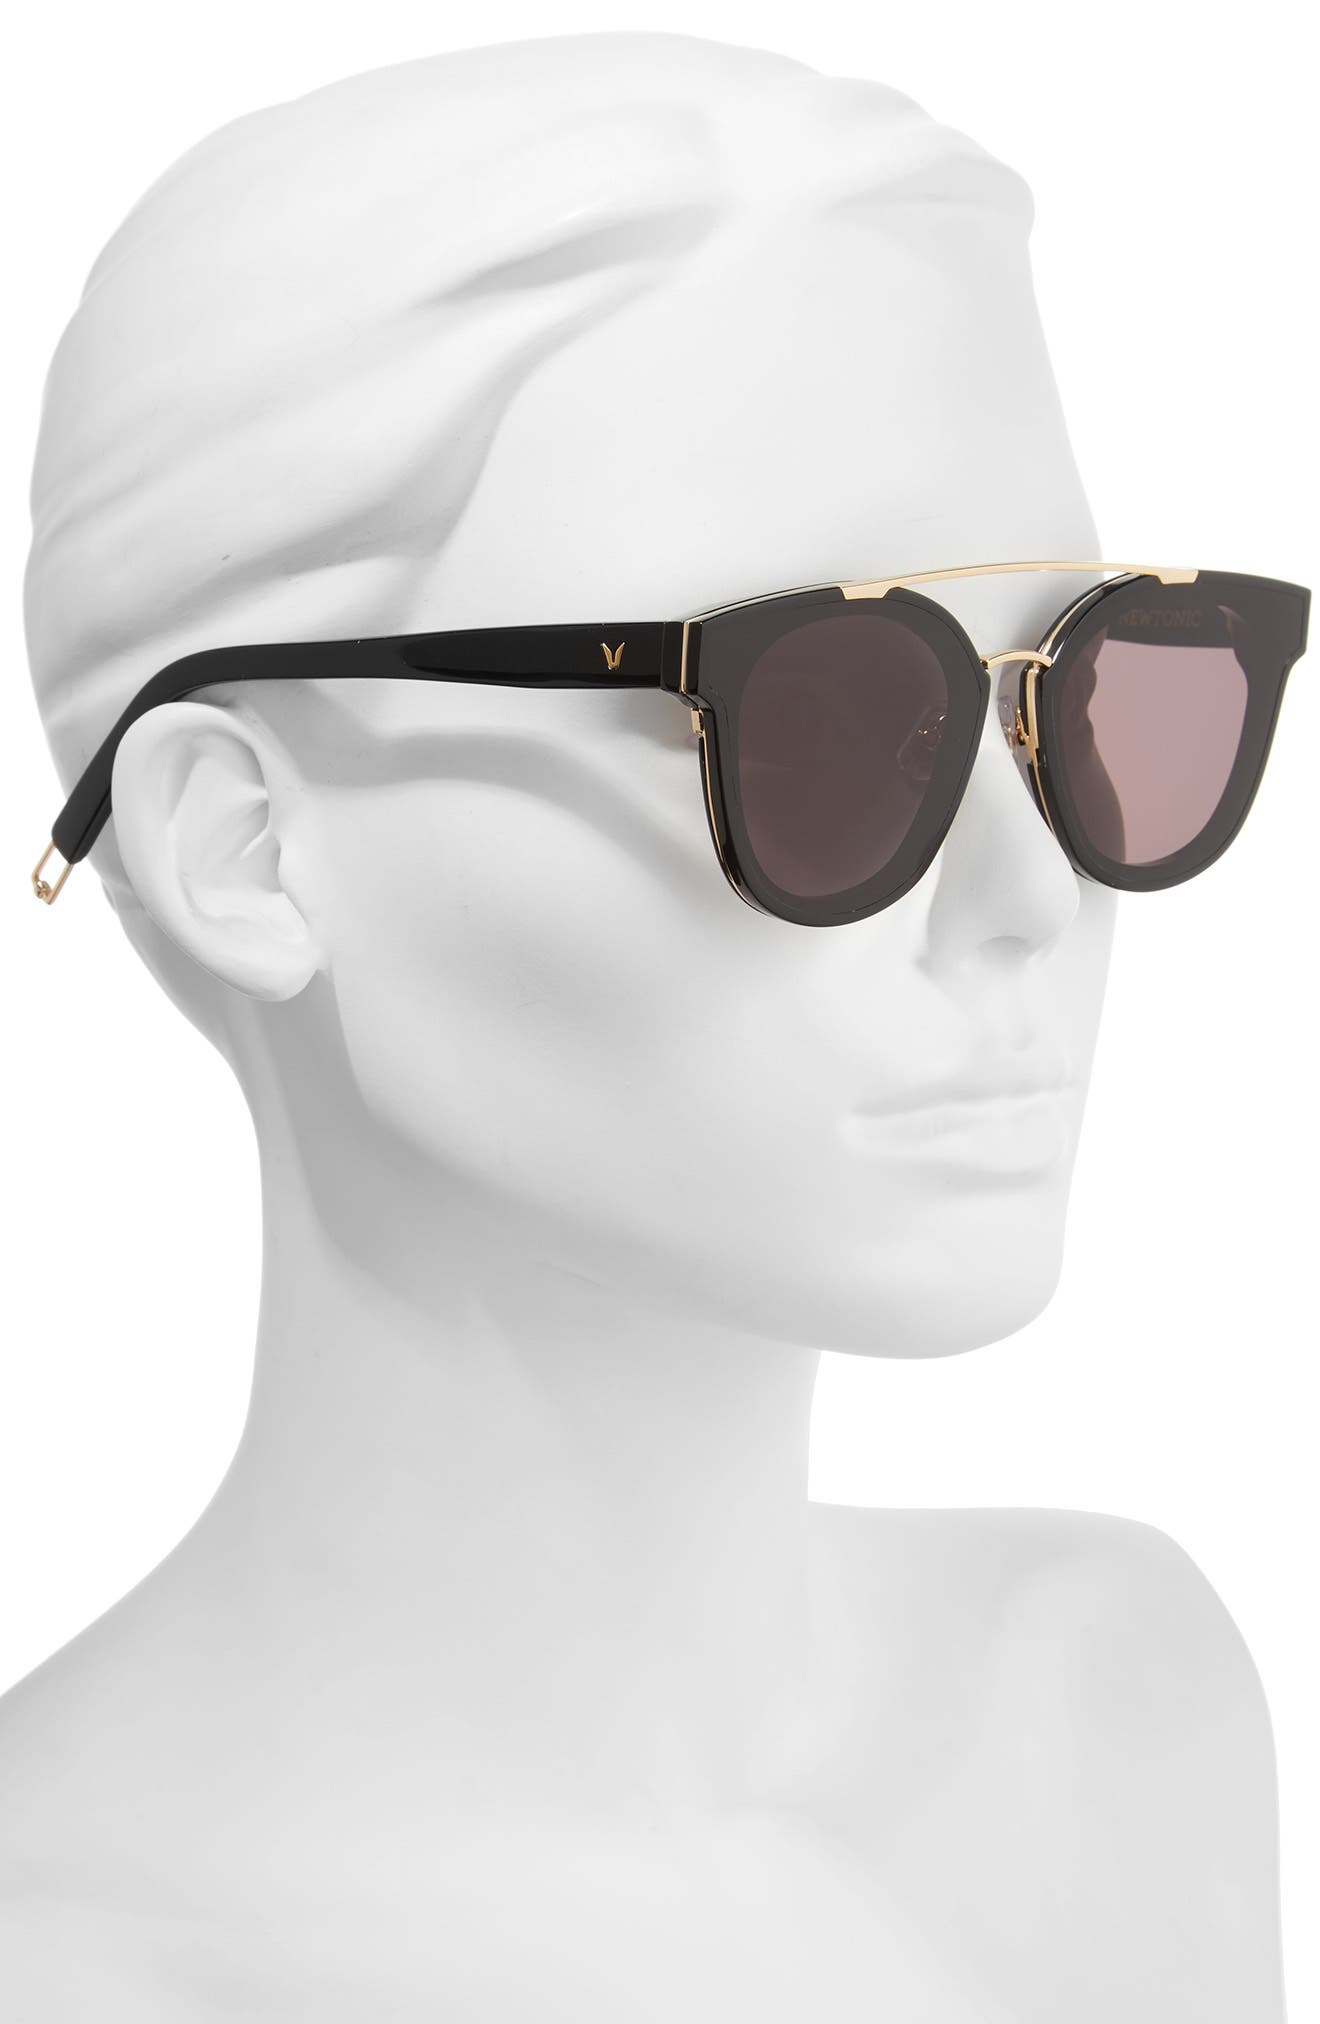 Tilda Swinton x Gentle Monster Newtonic 60mm Rounded Sunglasses,                             Alternate thumbnail 2, color,                             001